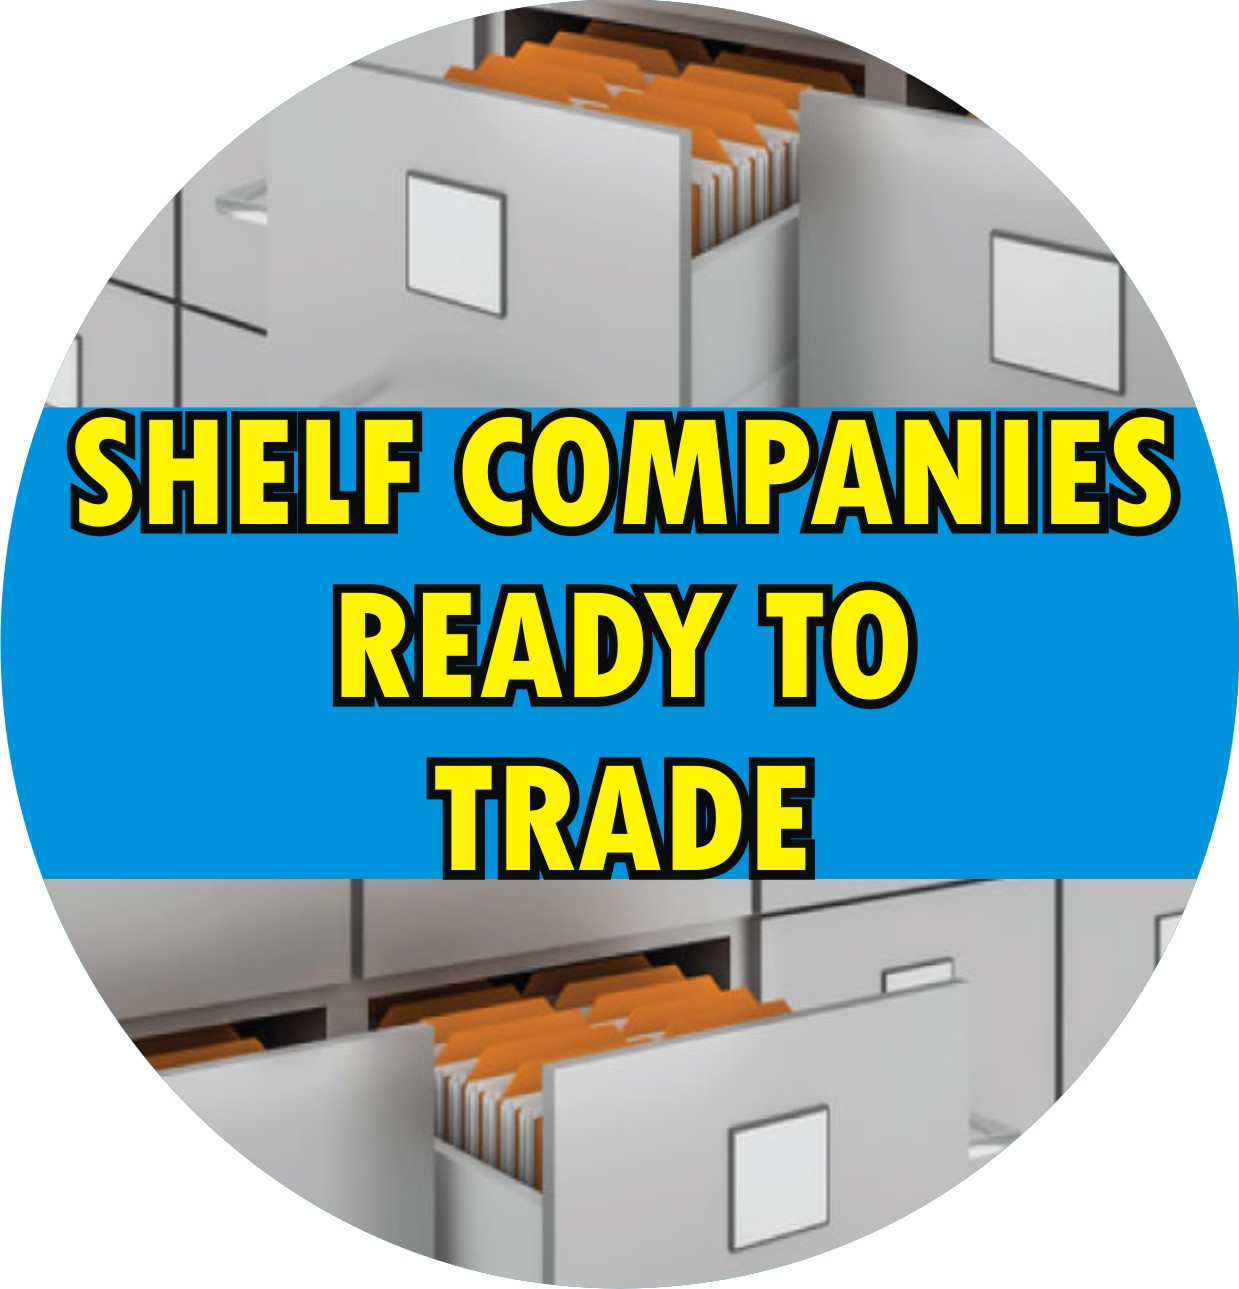 SHELF COMPANIES REGISTERED IN 2012, 2017, 2018 AND 2019